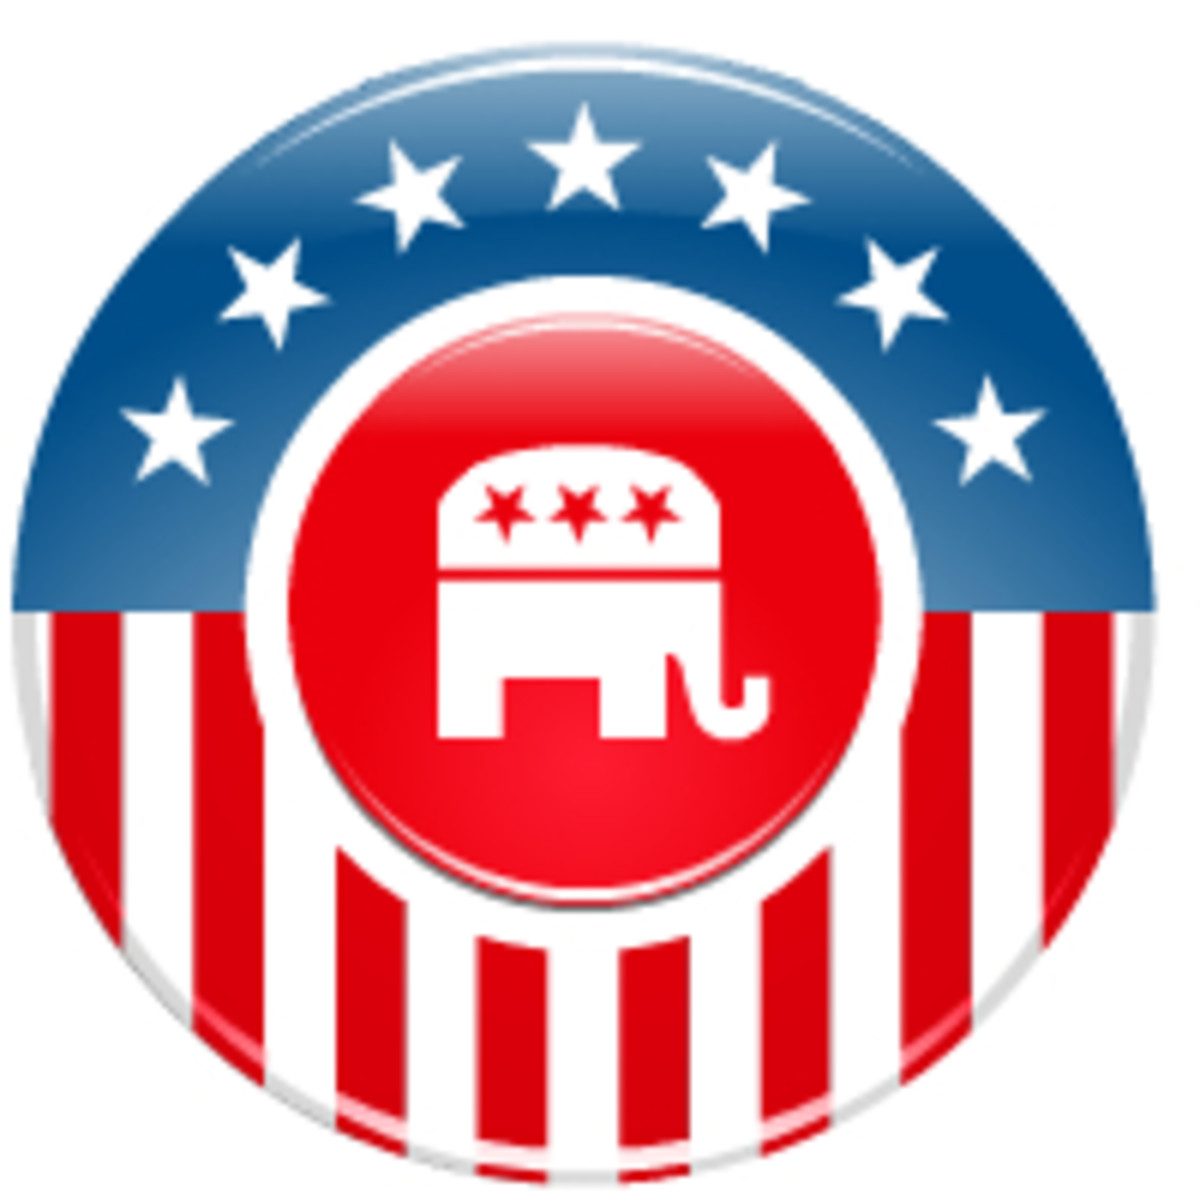 Election clip art: Republican elephant